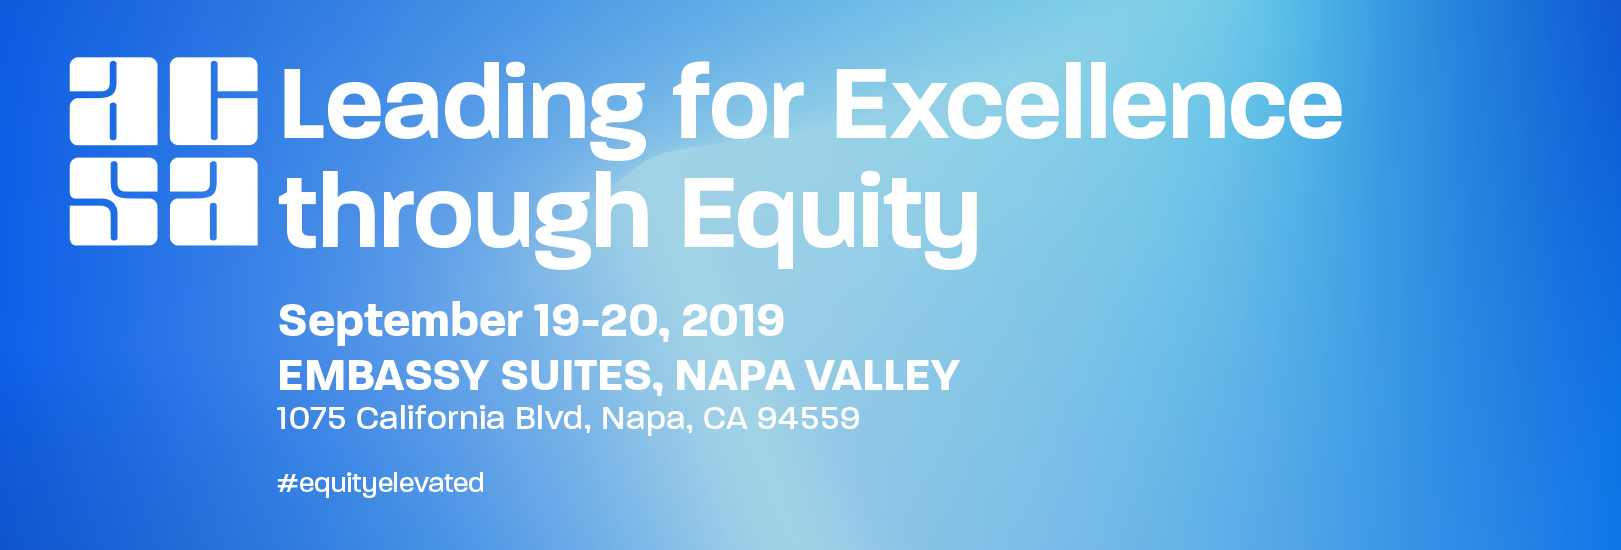 ACSA's Leading for Excellence through Equity Conference will take place September 19 to 20 in Napa, California.